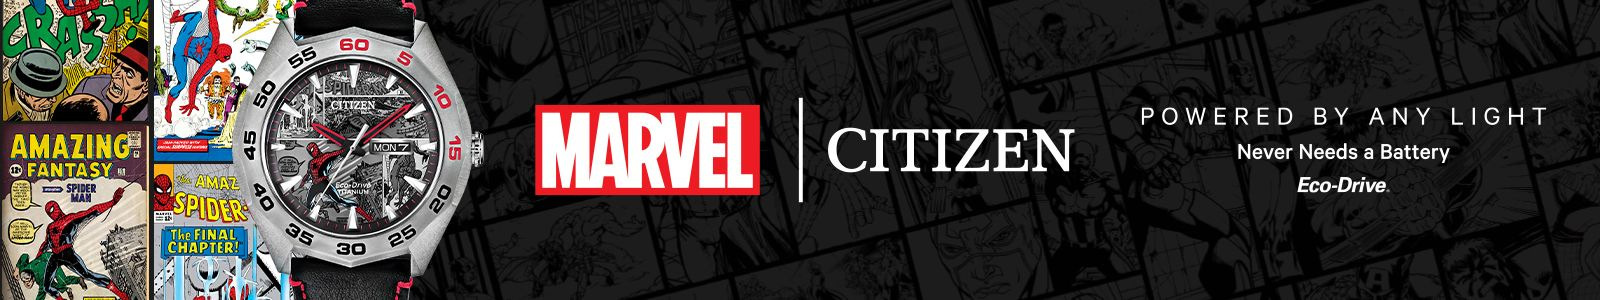 Marvel, Citizen, Powered by Any Light, Never Needs a Battery, Eco-Drive